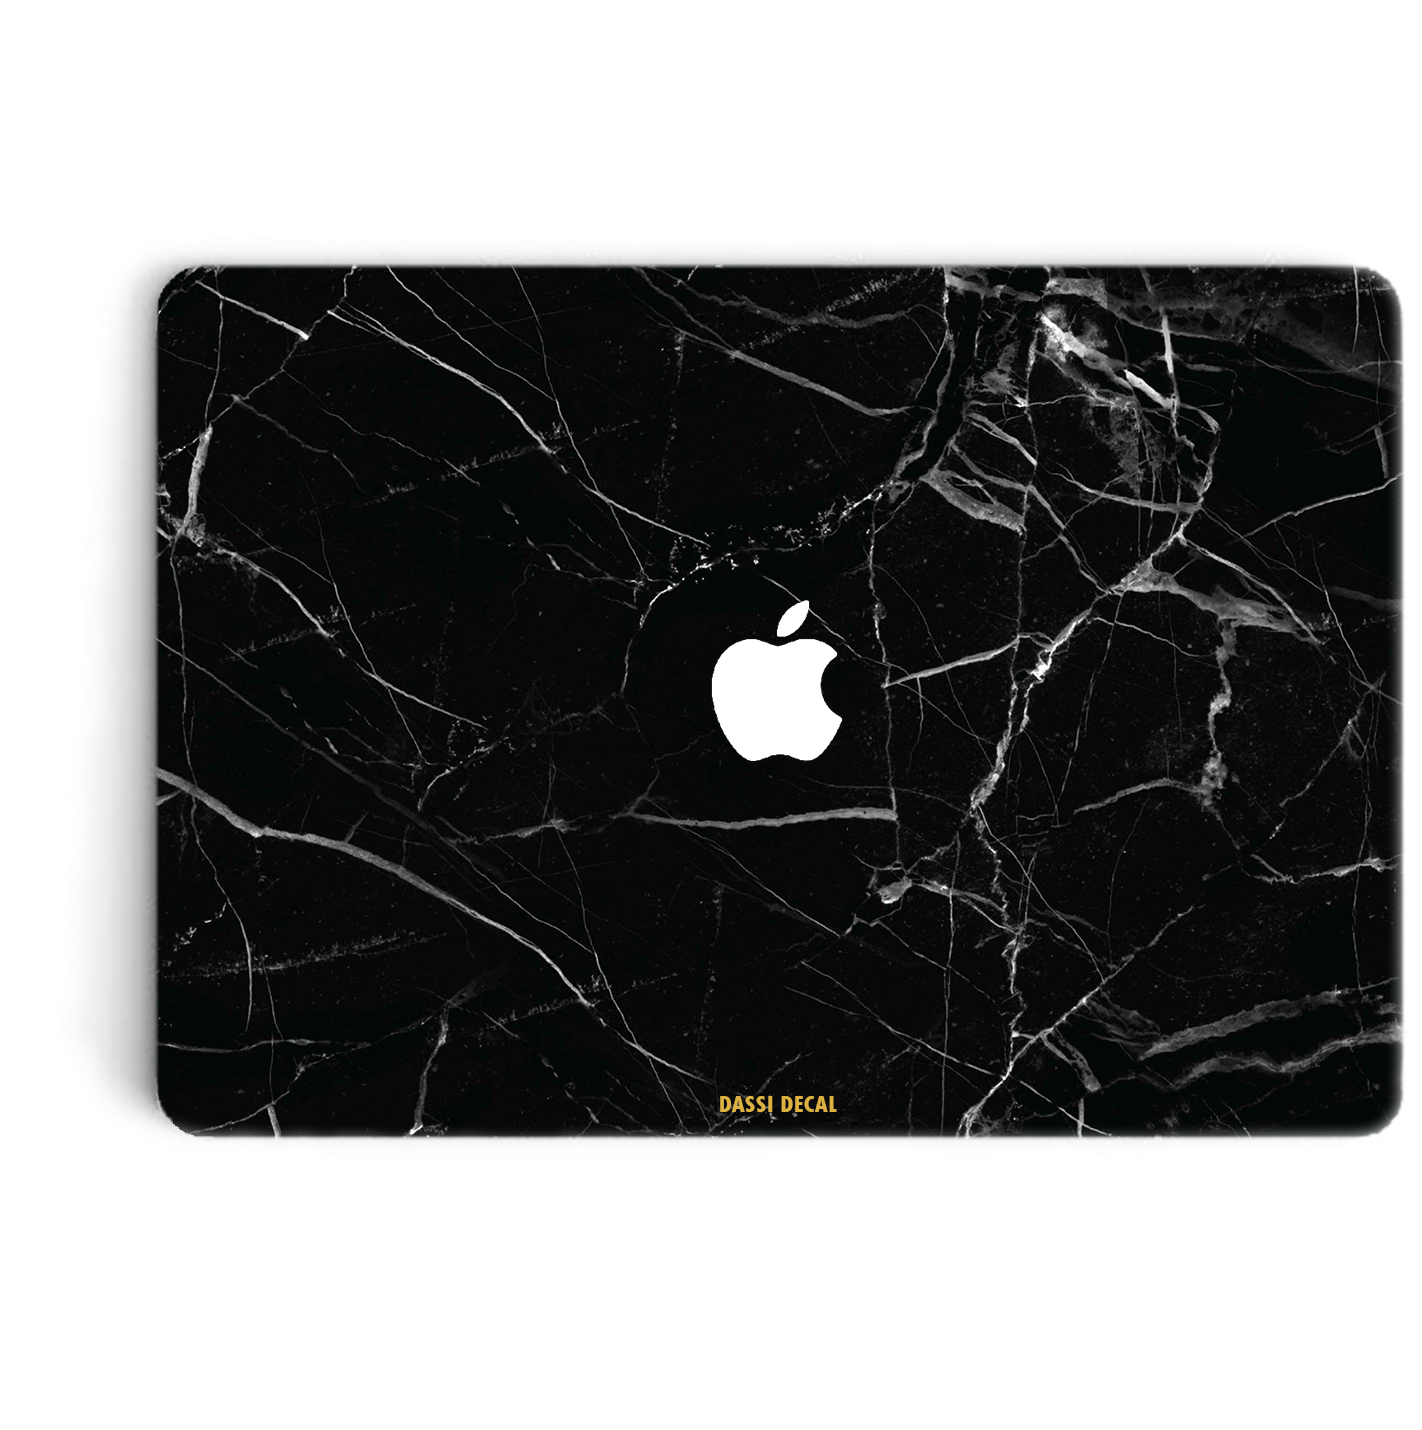 15 159158 black marble macbook skin aesthetic desktop wallpaper tumblr